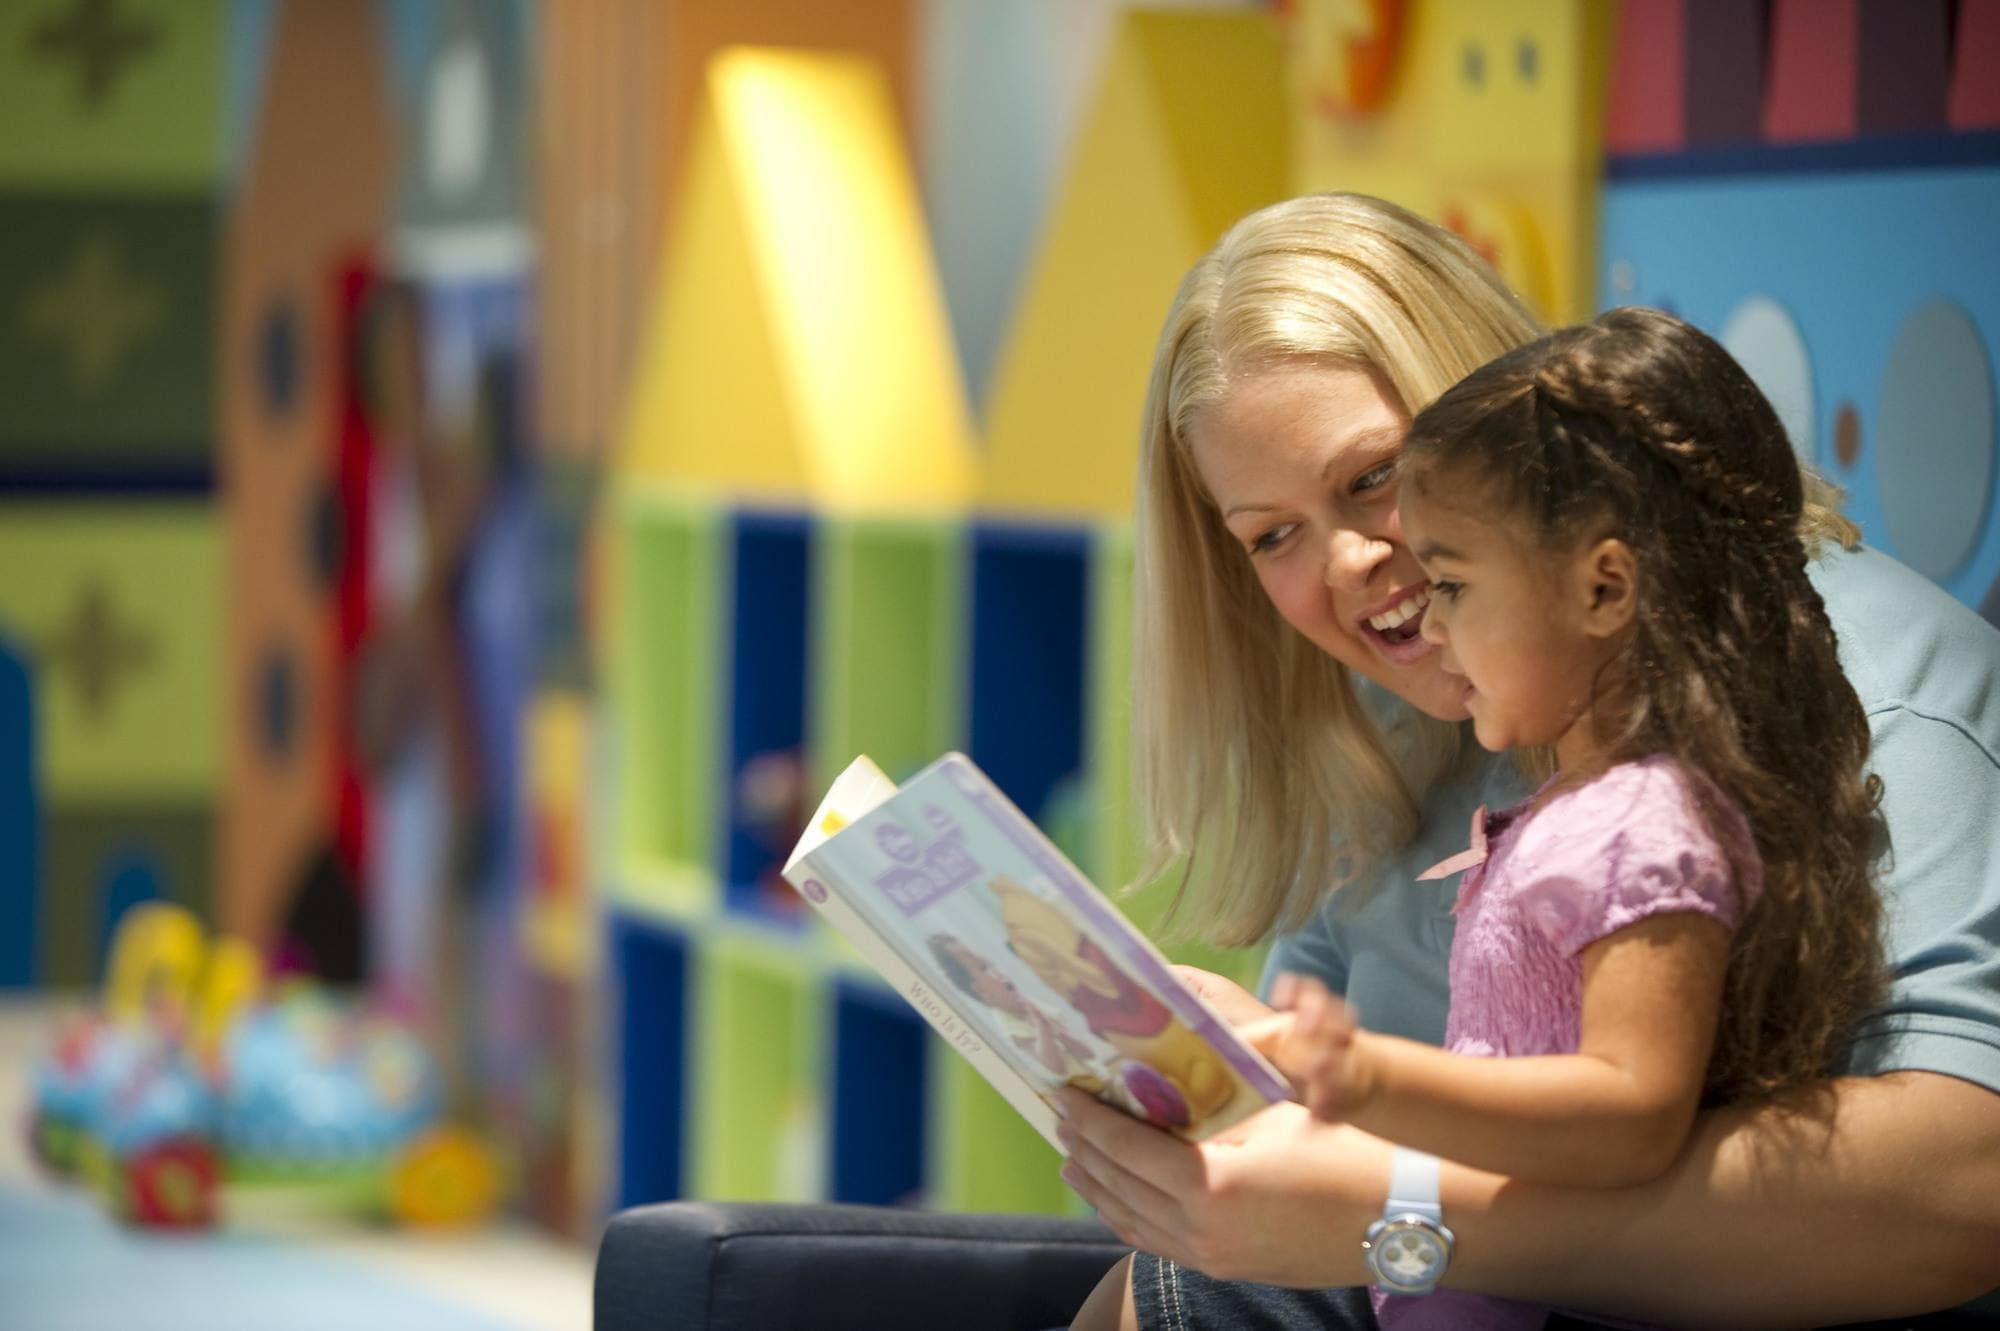 It's a Small World Nursery on Disney Dream delights infants and toddlers up to 3 years old